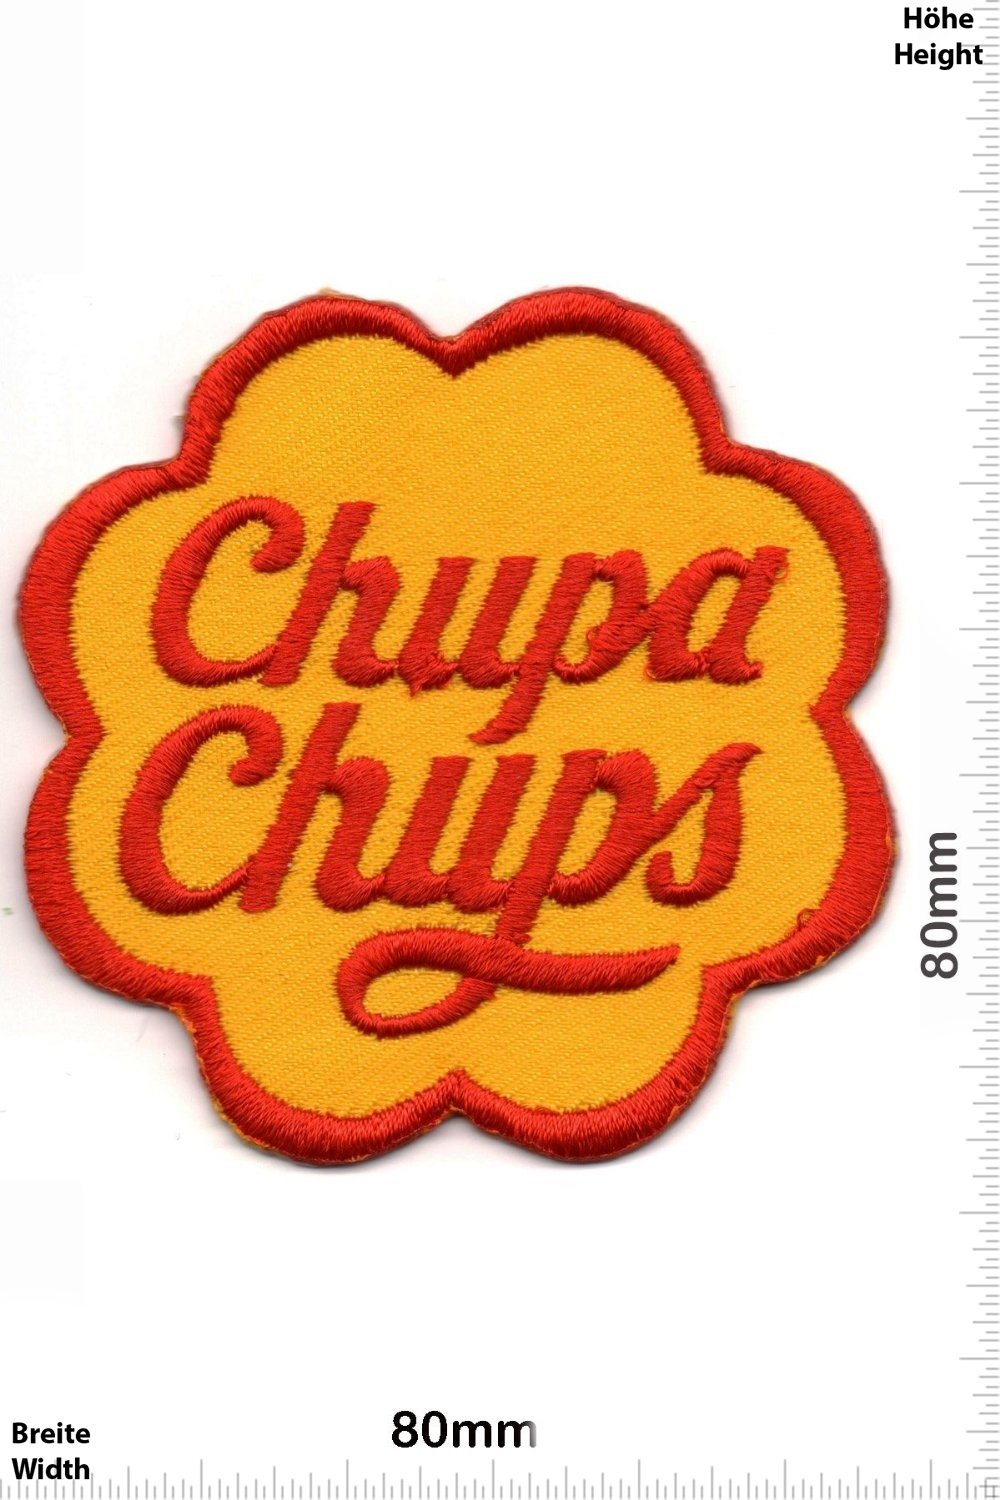 Chupa Chups Mix Patches Applique embroidery /Écusson brod/é Costume Cadeau- Give Away Iron on Patch Vest Patches Brands